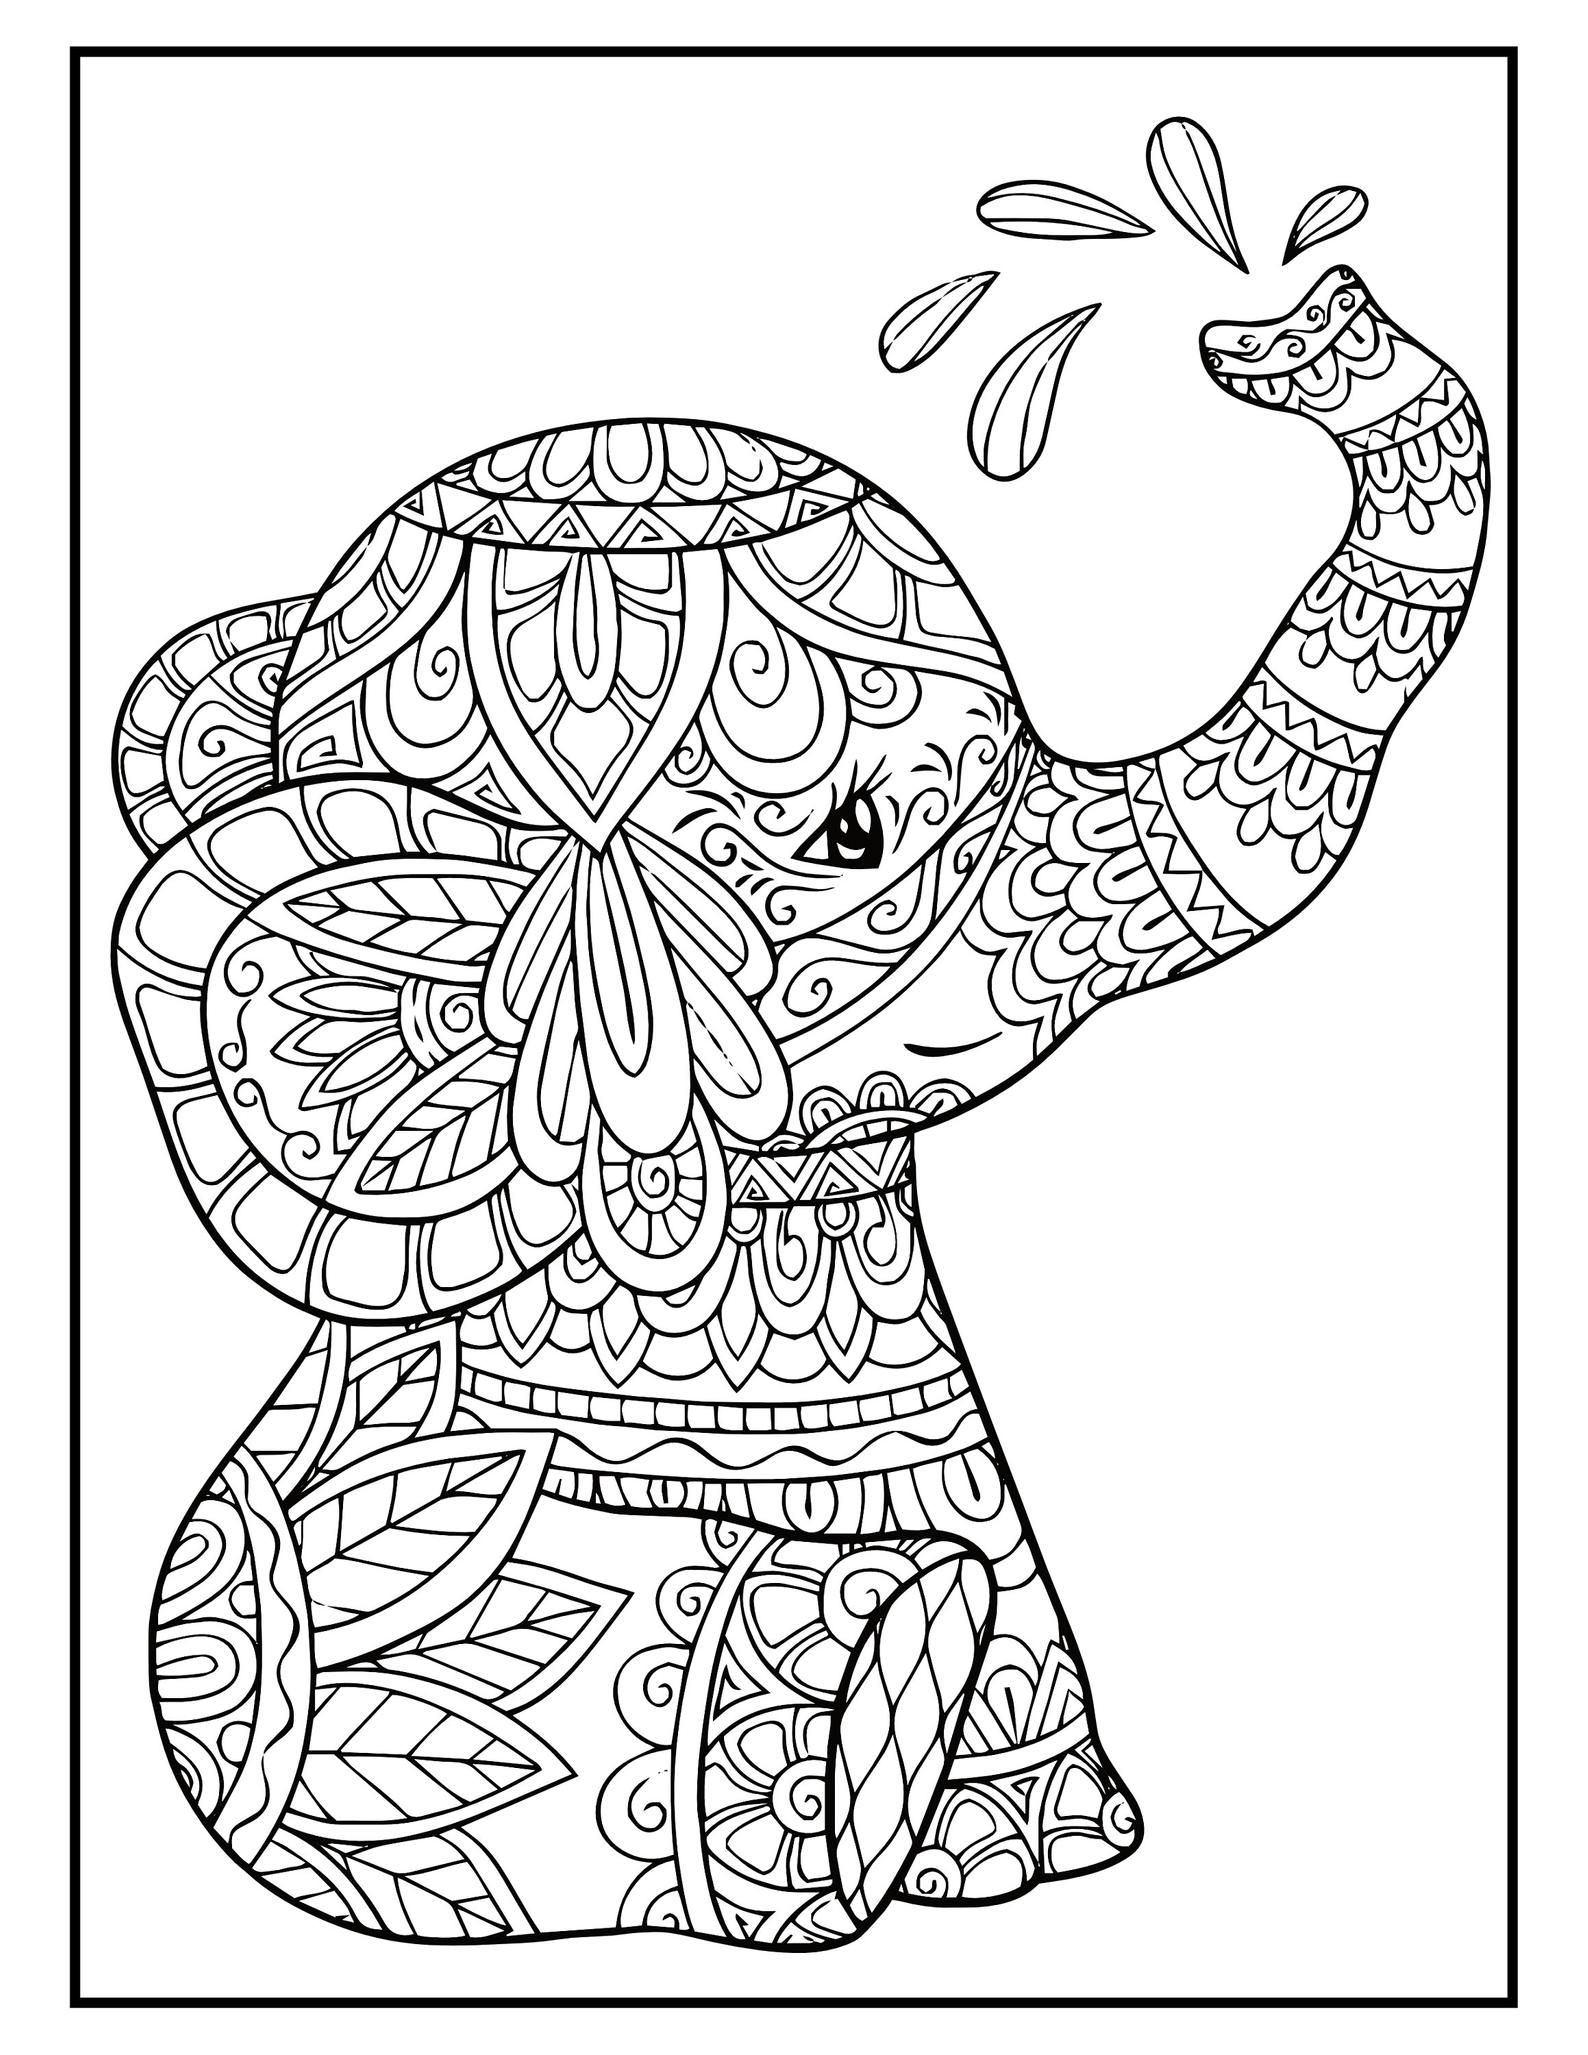 Elephant Mandala Coloring Pages 50 Page Elephant Coloring Book For Adults And Kids Printable In 2021 Mandala Coloring Pages Mandala Coloring Books Mandala Coloring